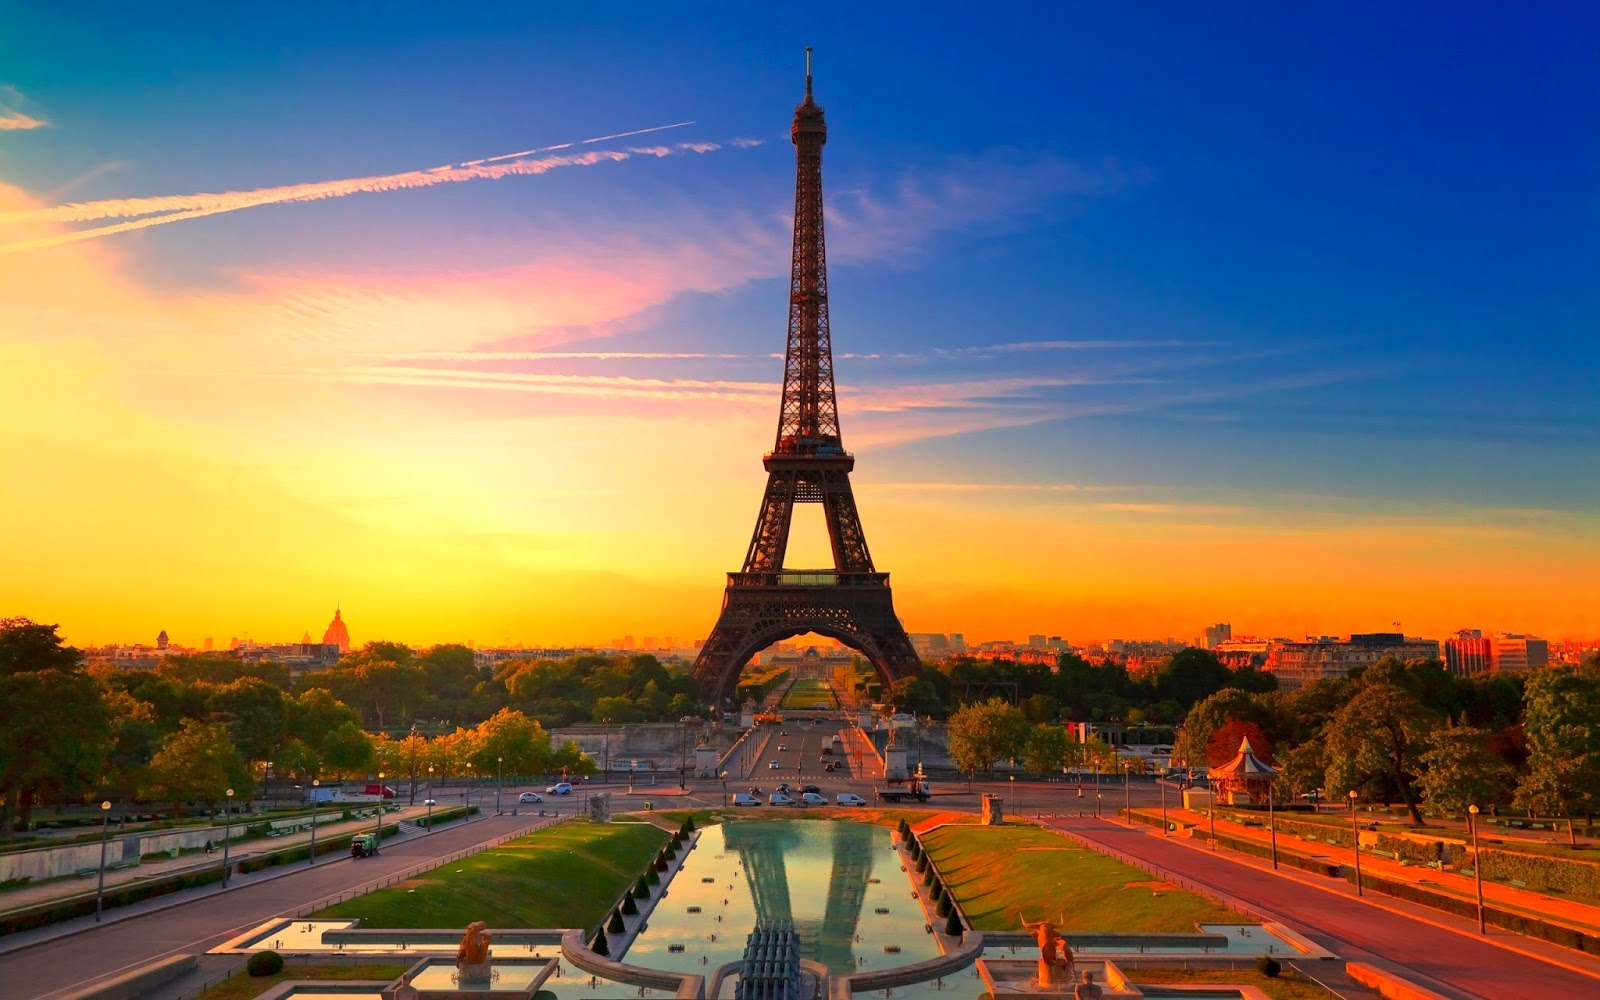 The Eiffel Tower at Sunset - Paris, France